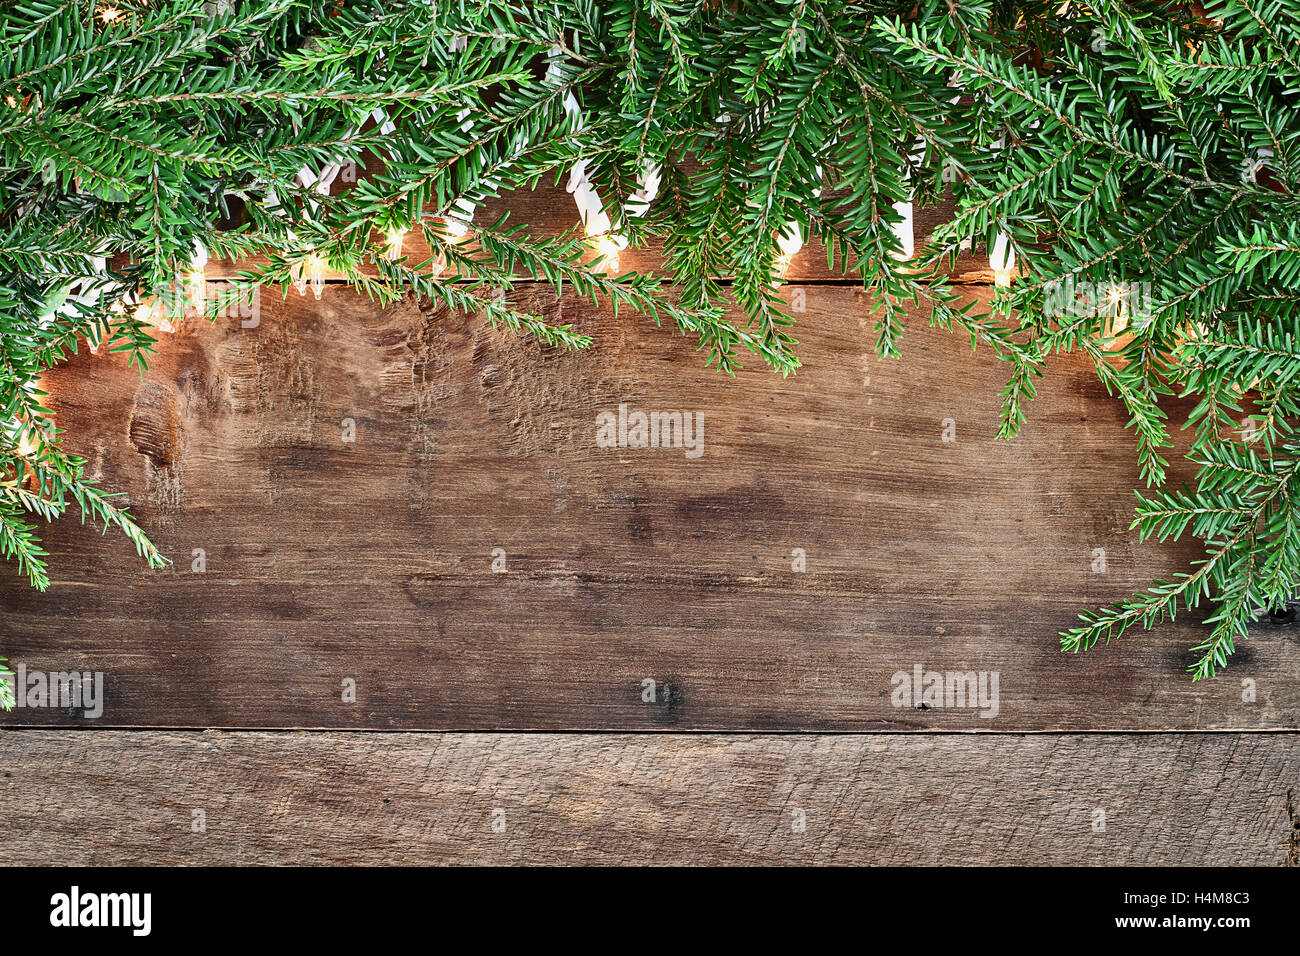 Christmas Tree Pine Branches And Decorative Lights Over A Rustic Background Of Barn Wood Image Shot From Overhead